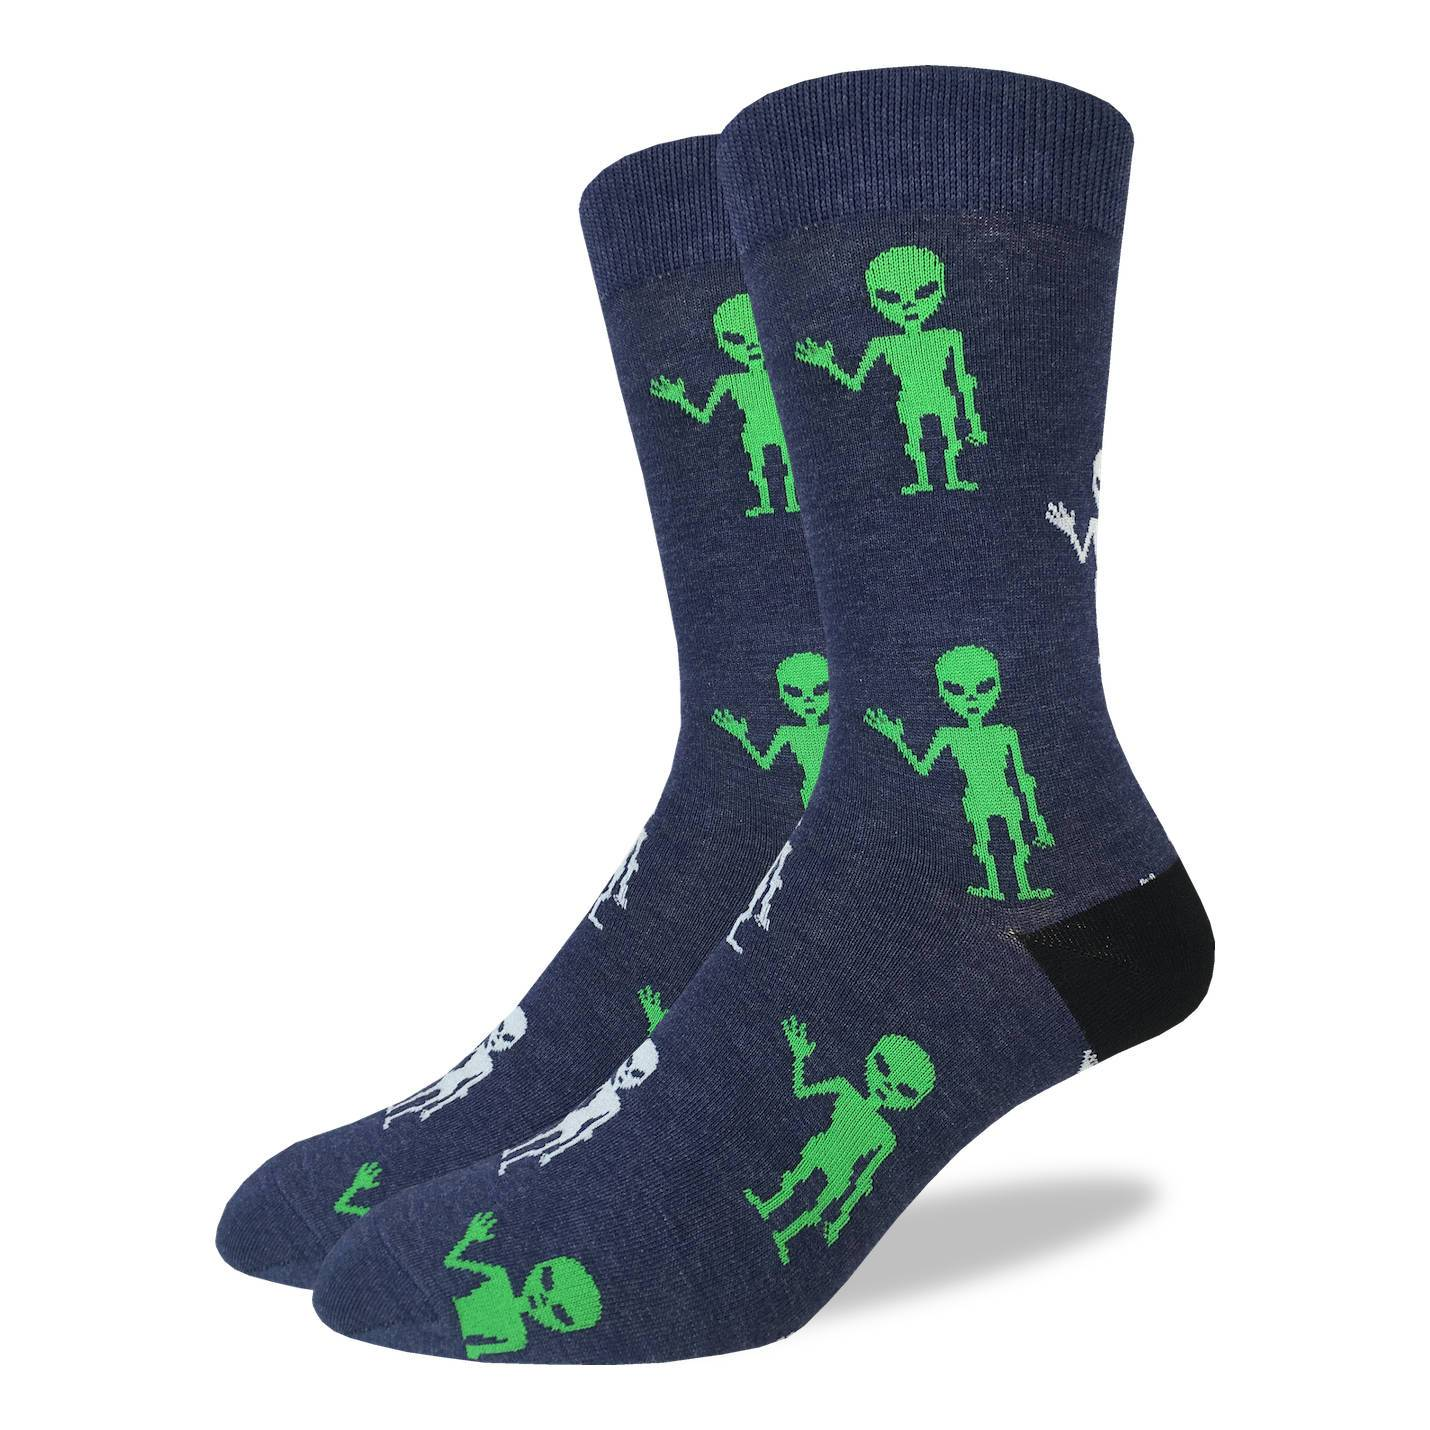 Men's King Size Aliens Socks - Good Luck Sock